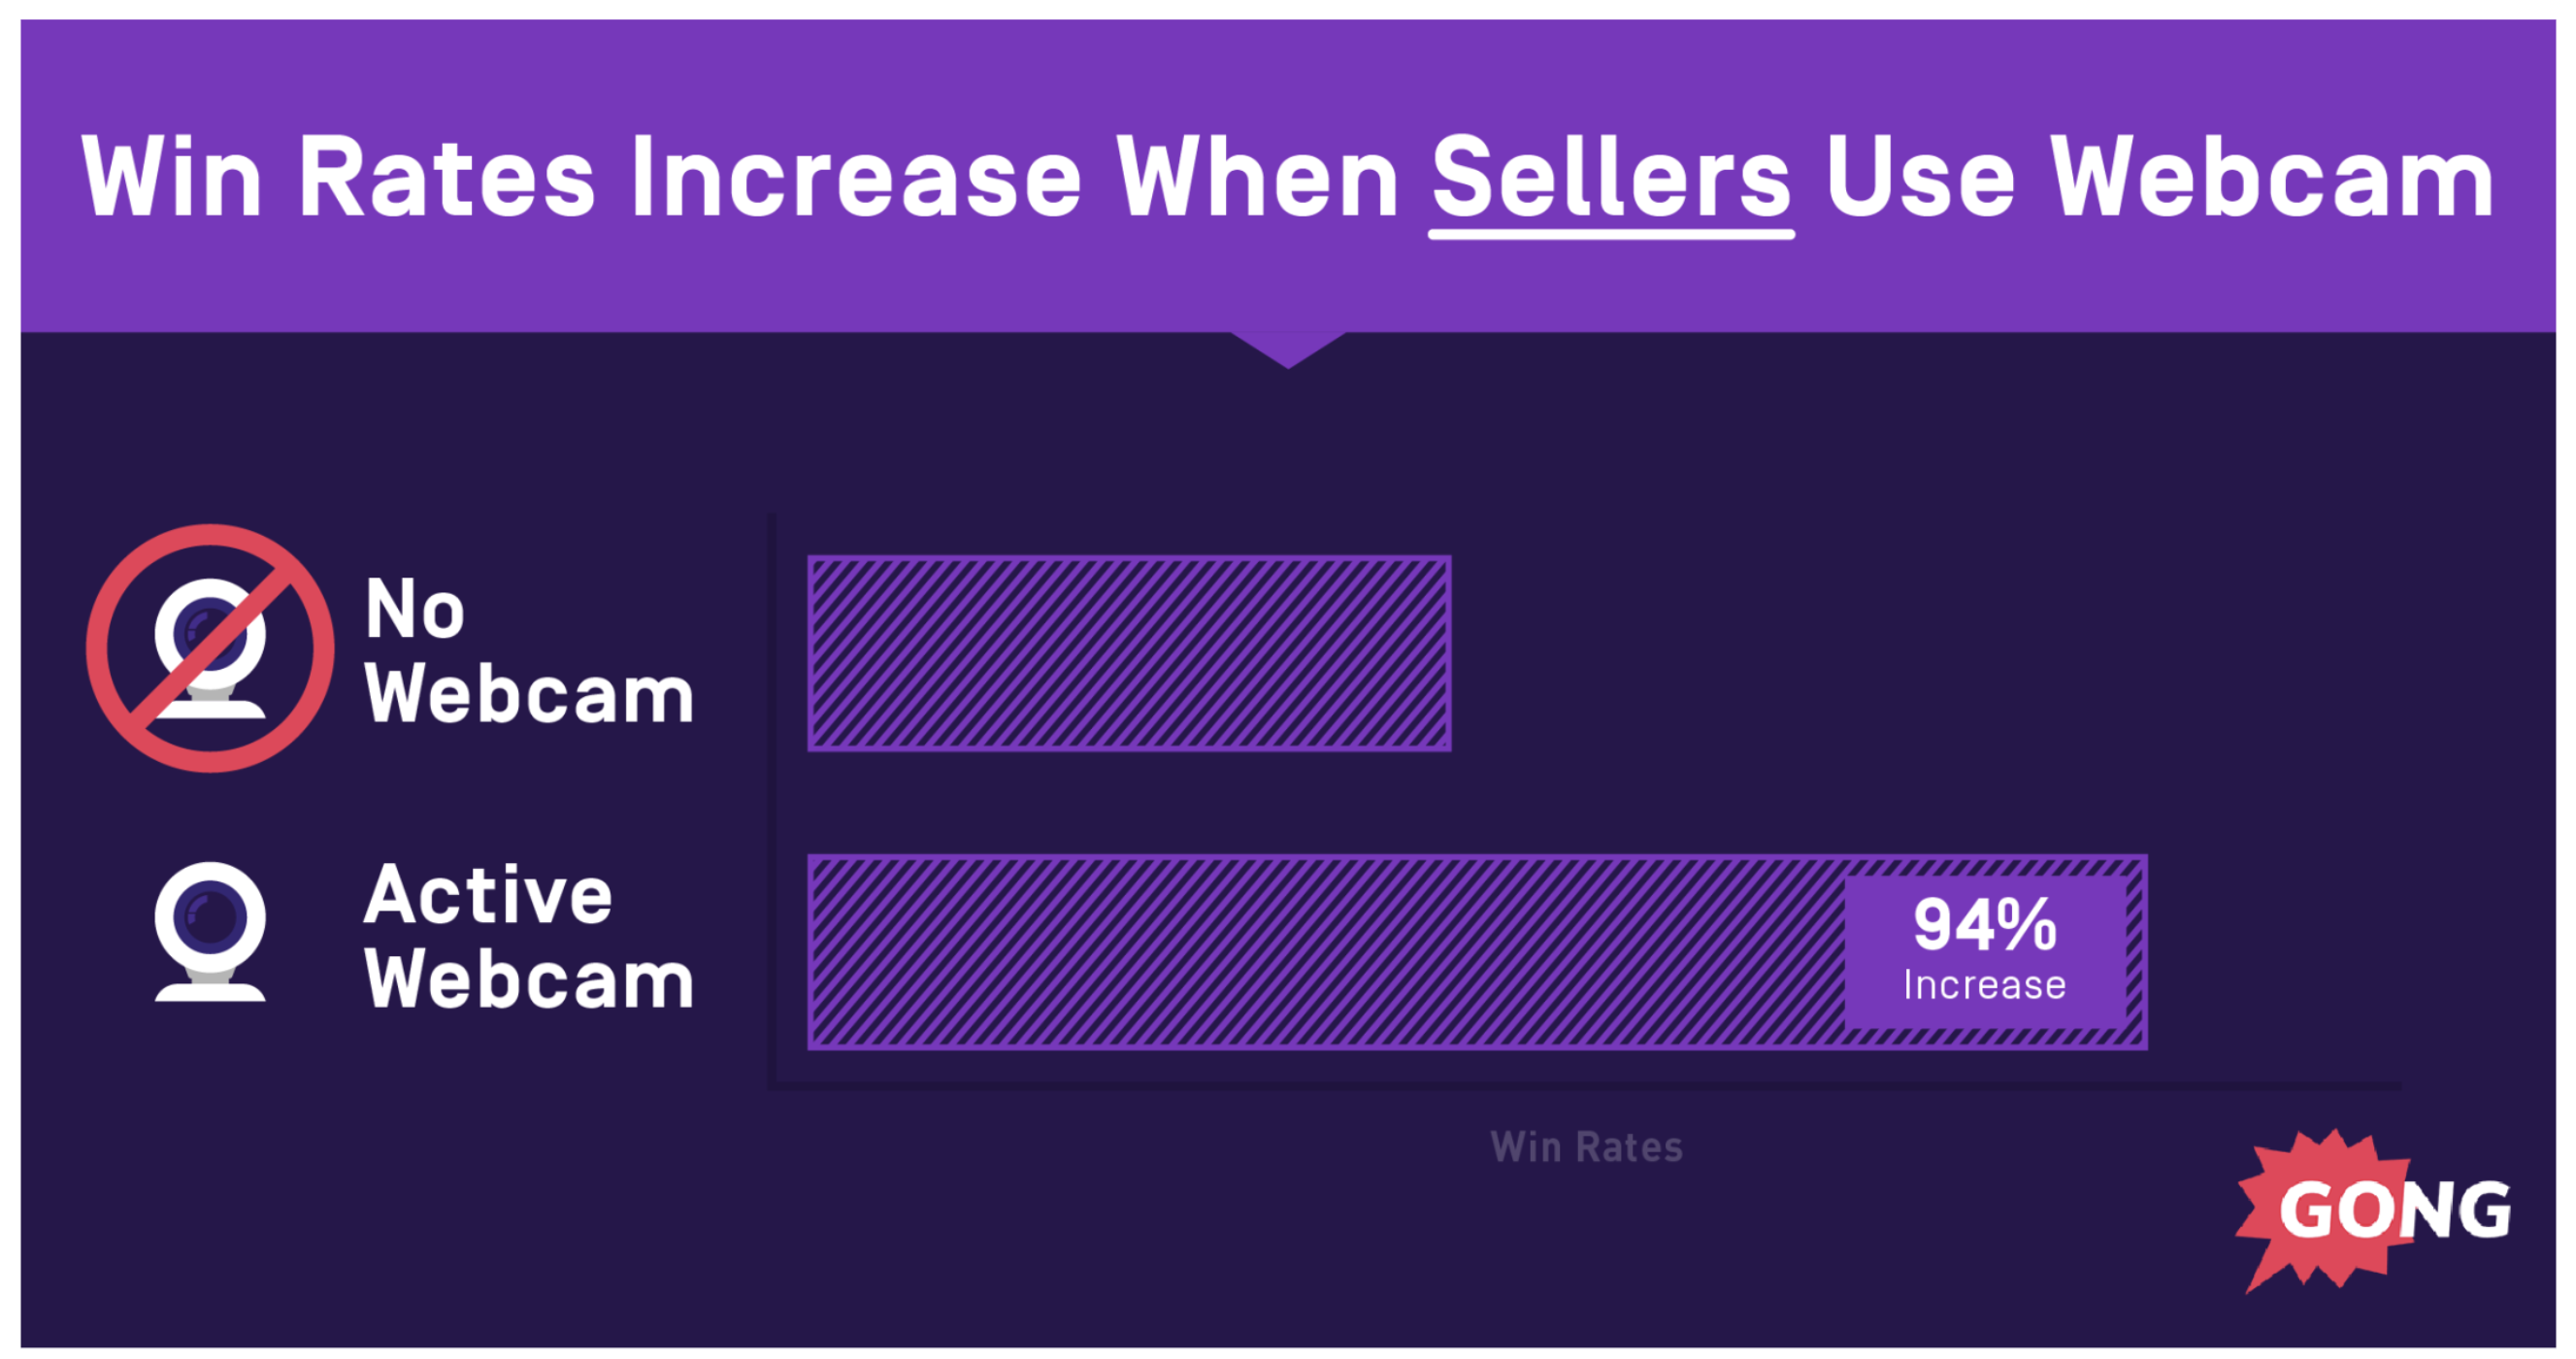 sales studies and statistics show win rates increase when sellers use webcams